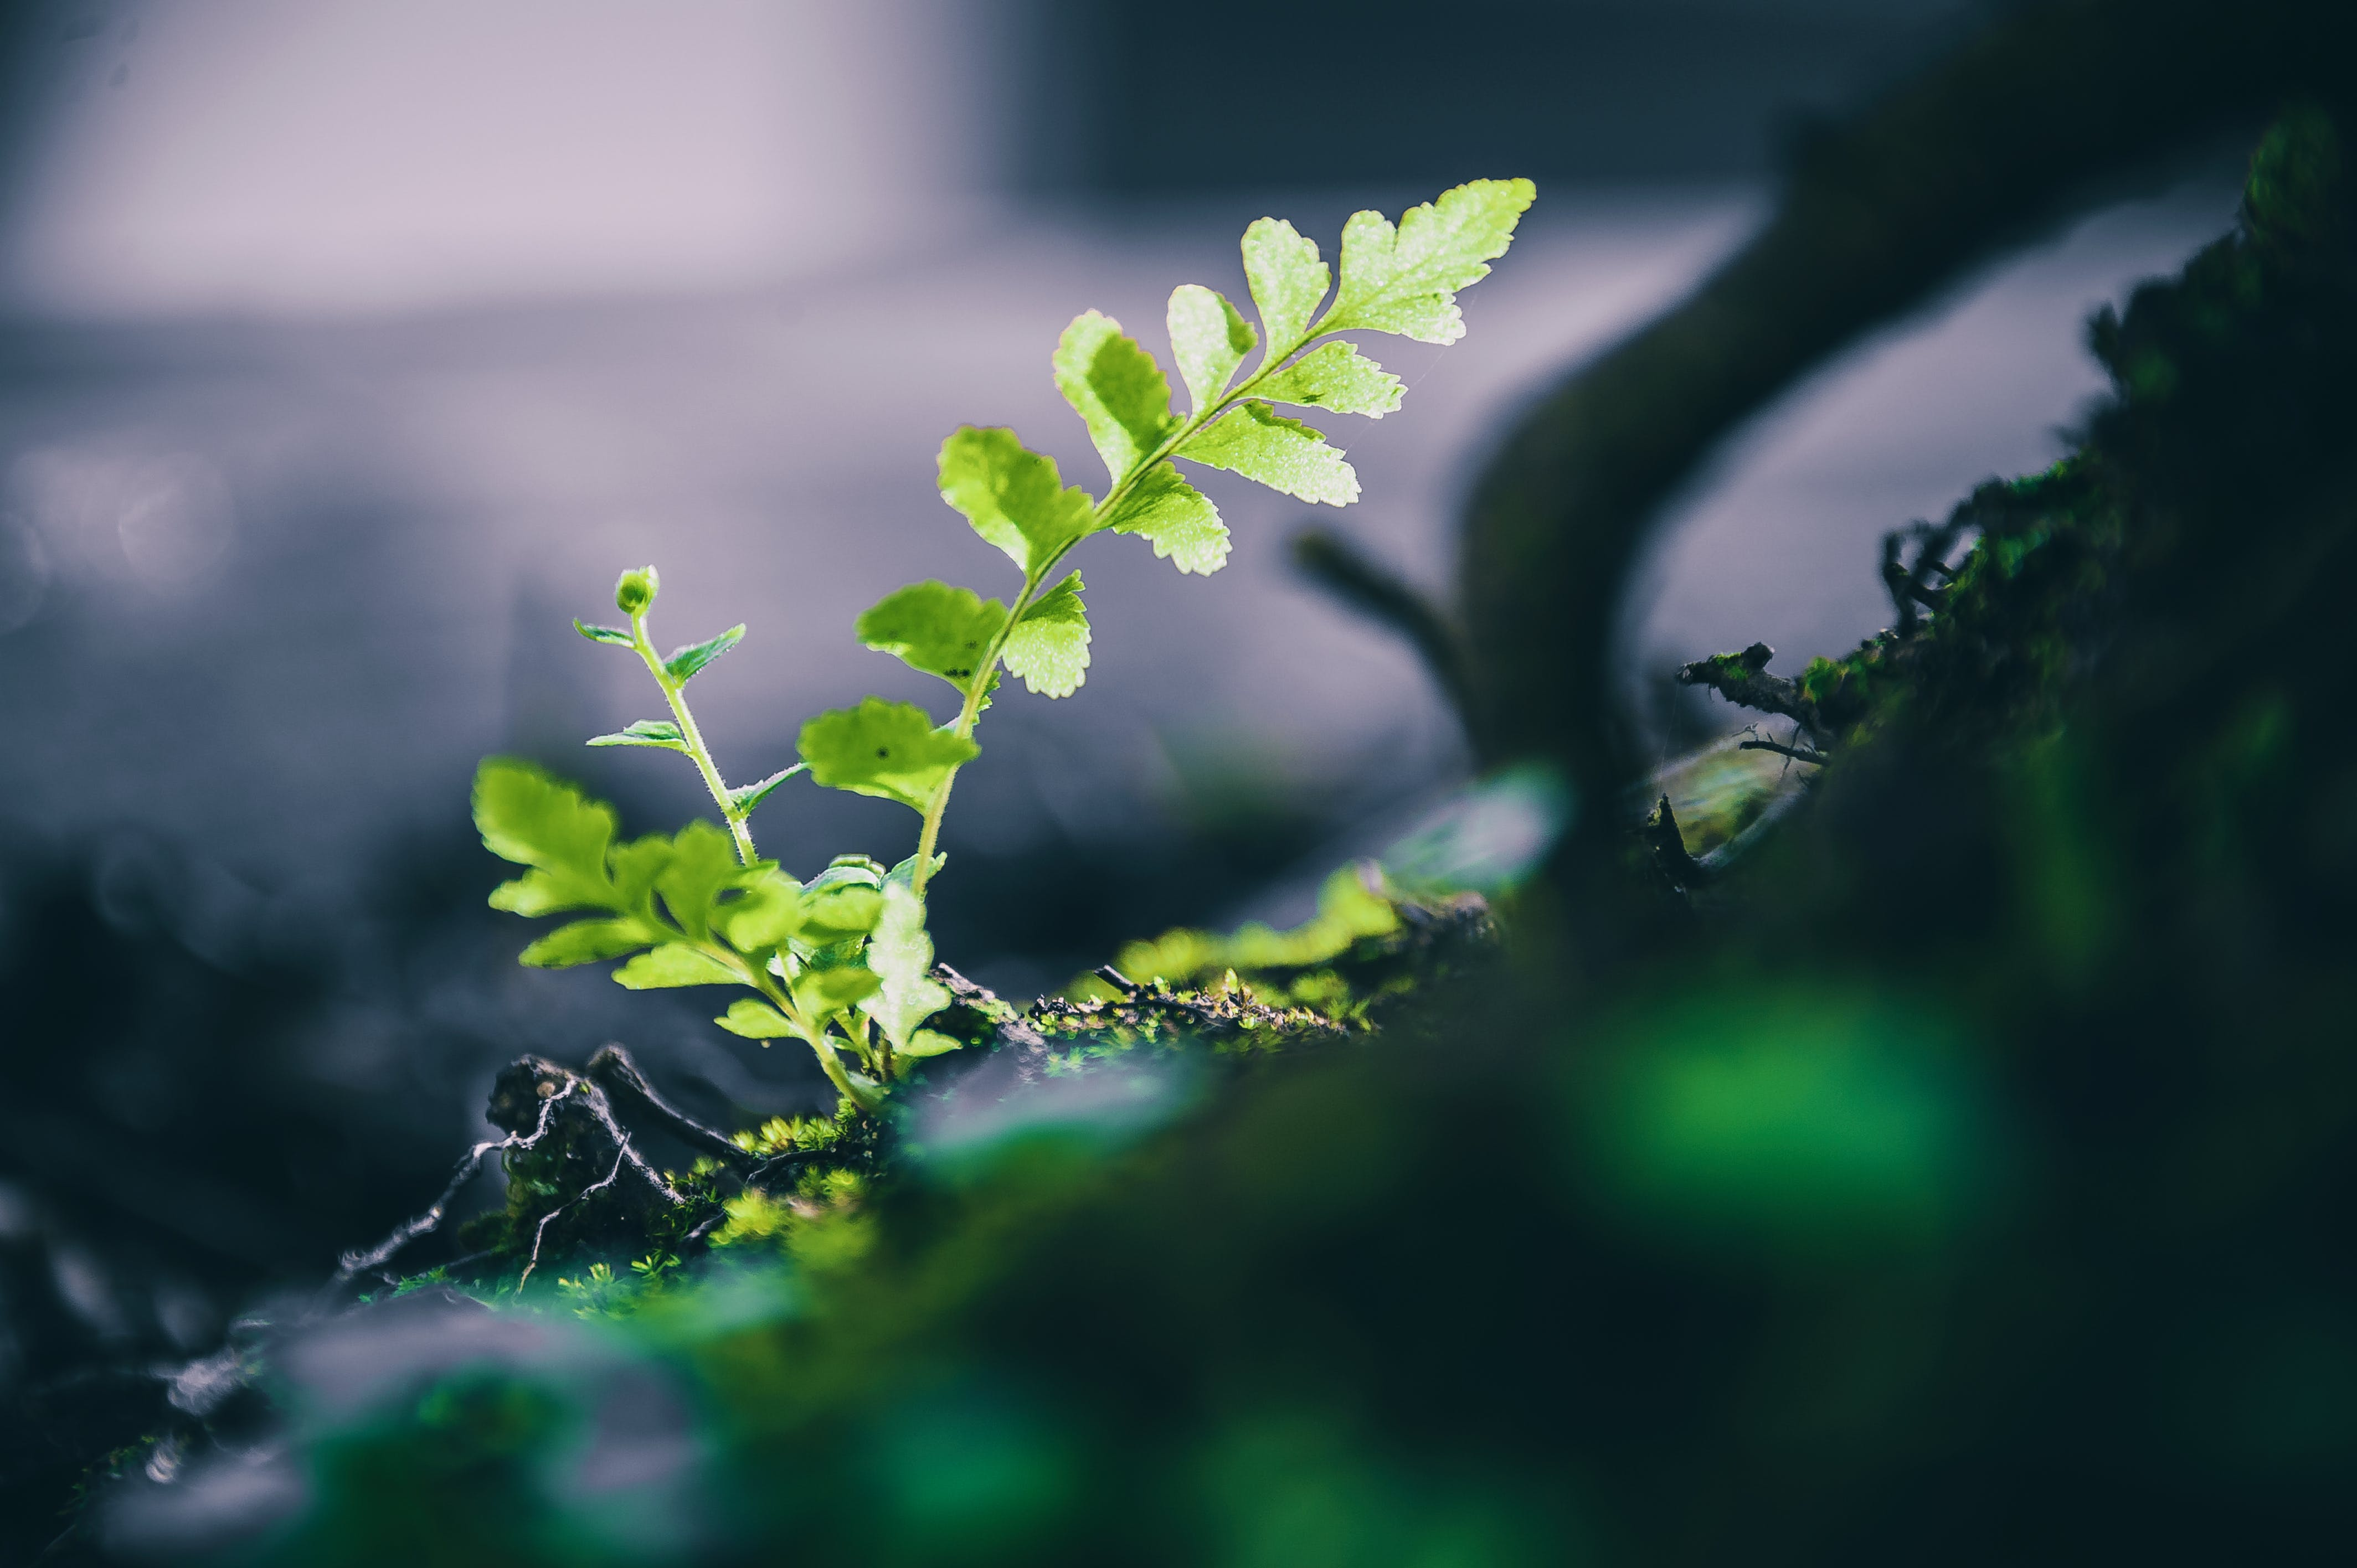 Macro Photo Of Green Leafed Plant